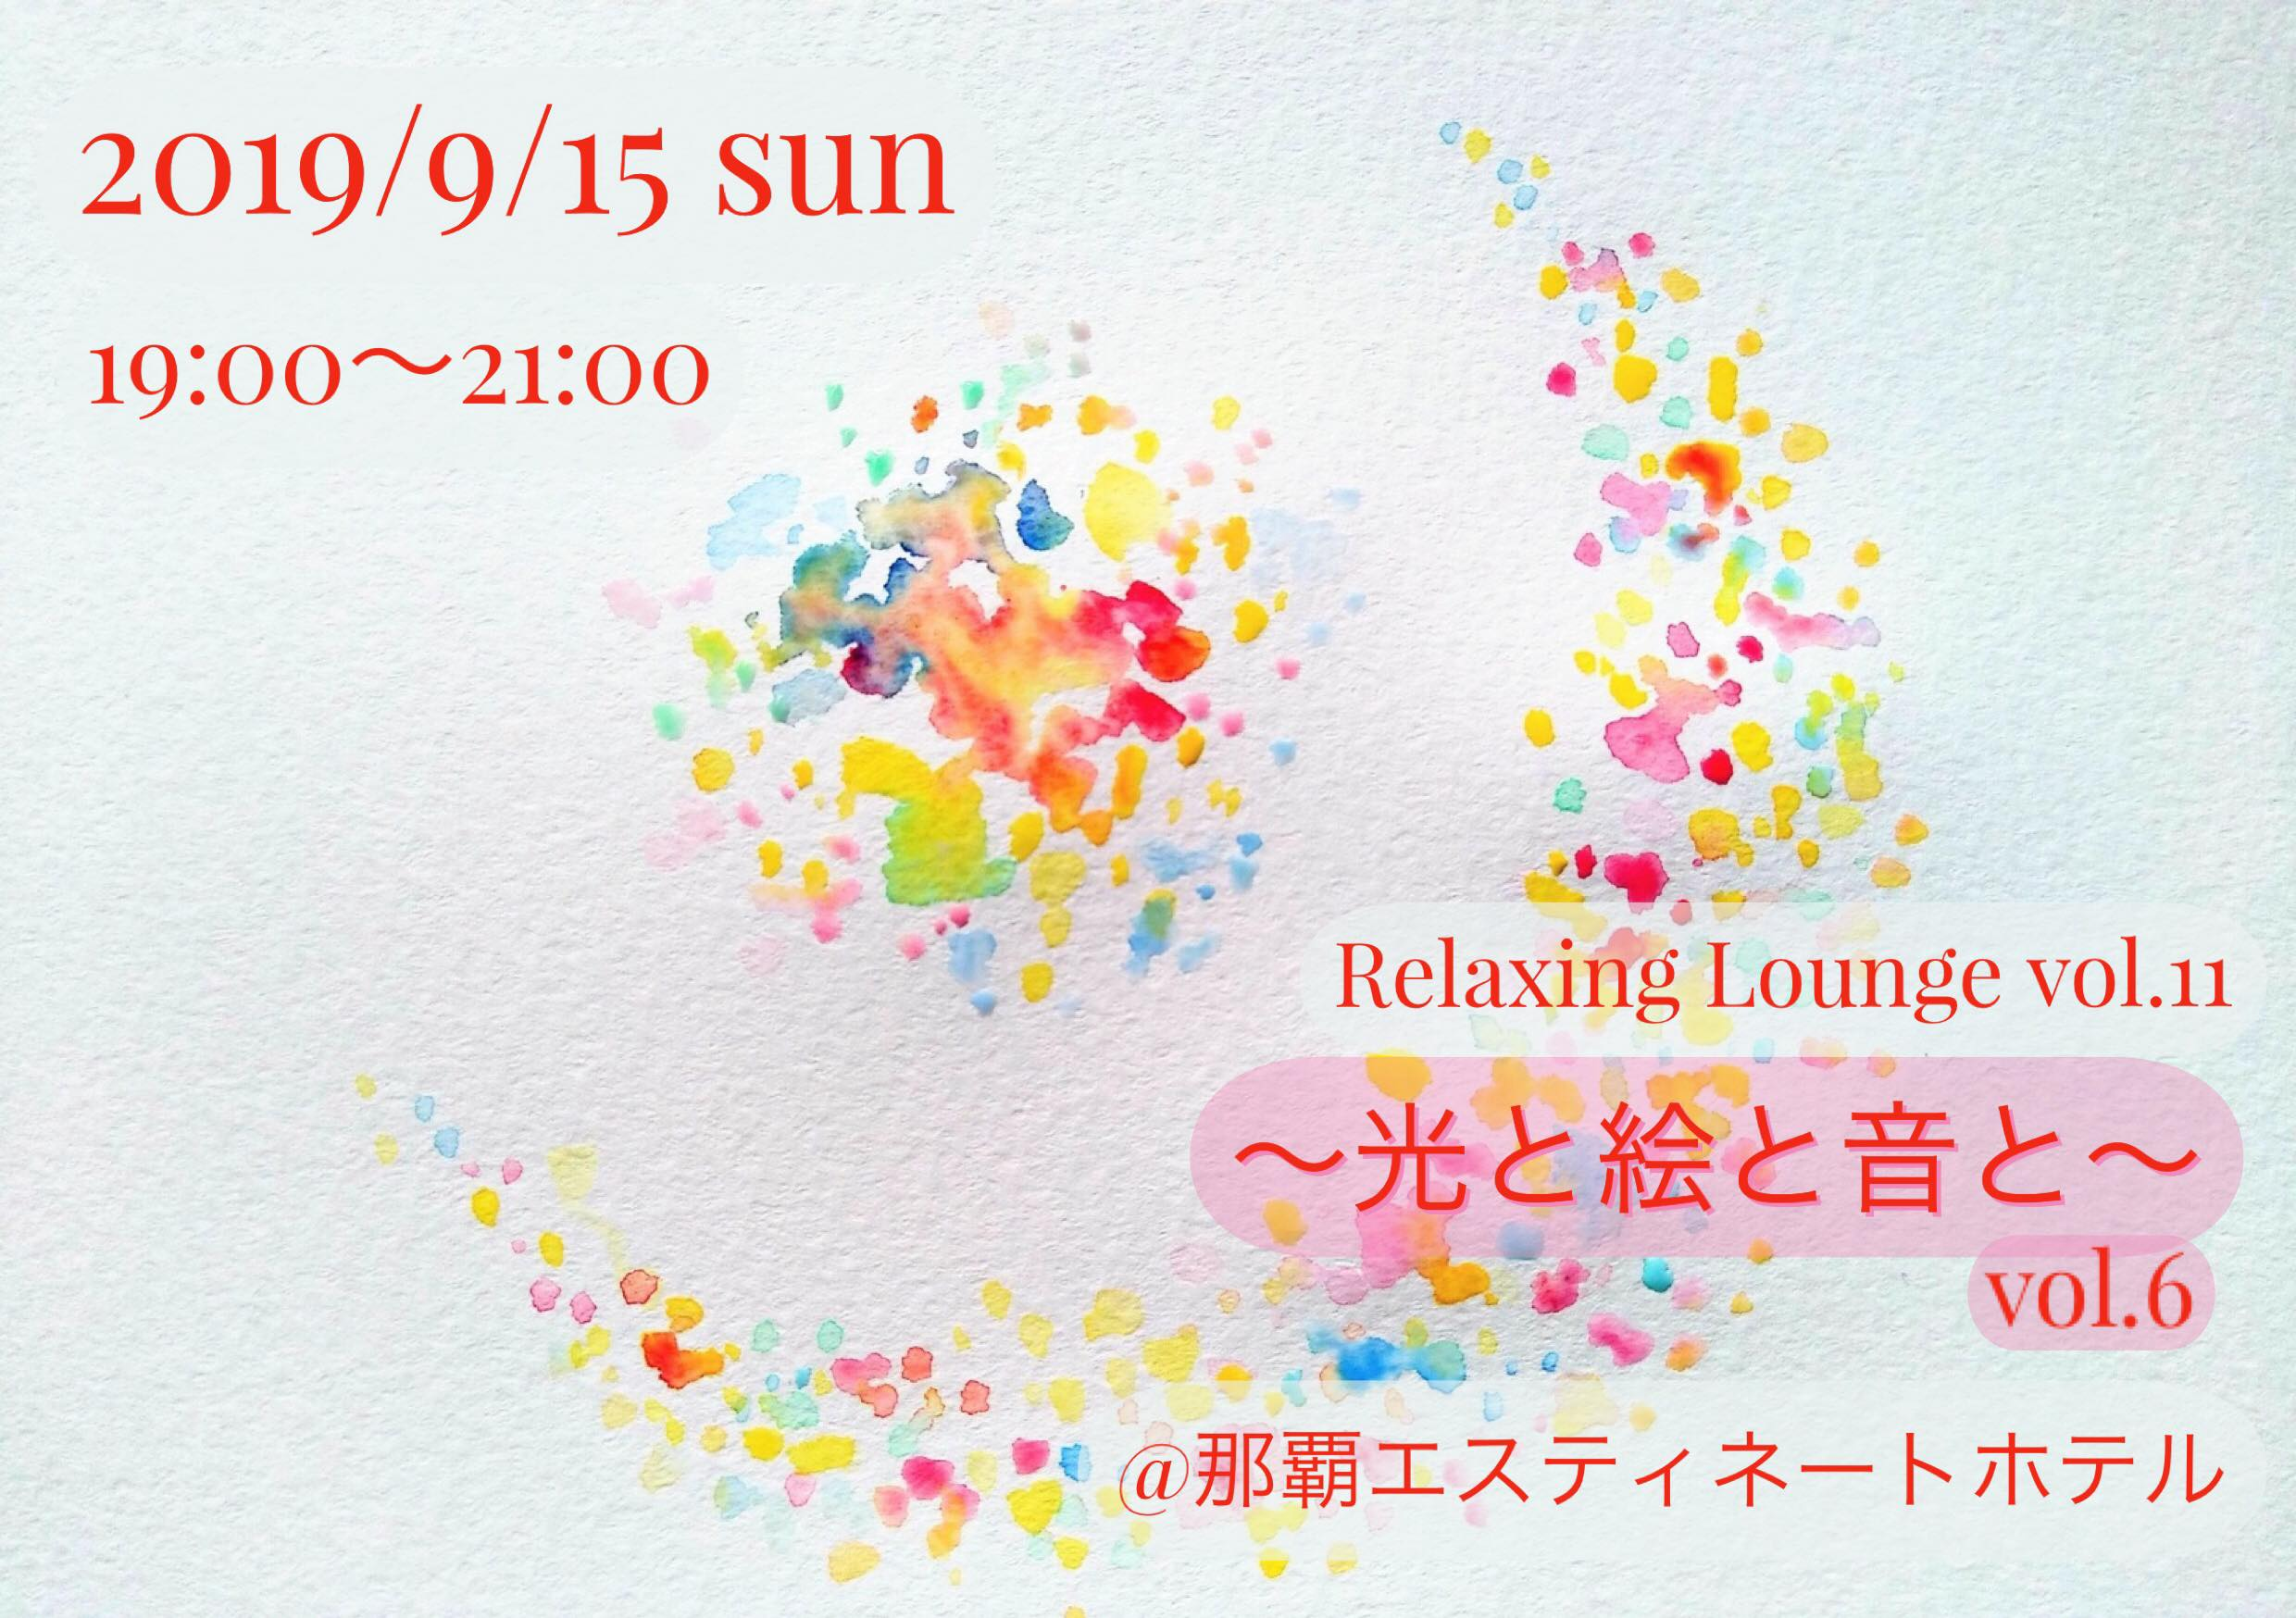 2019/9/15 sun Relaxing Lounge vol